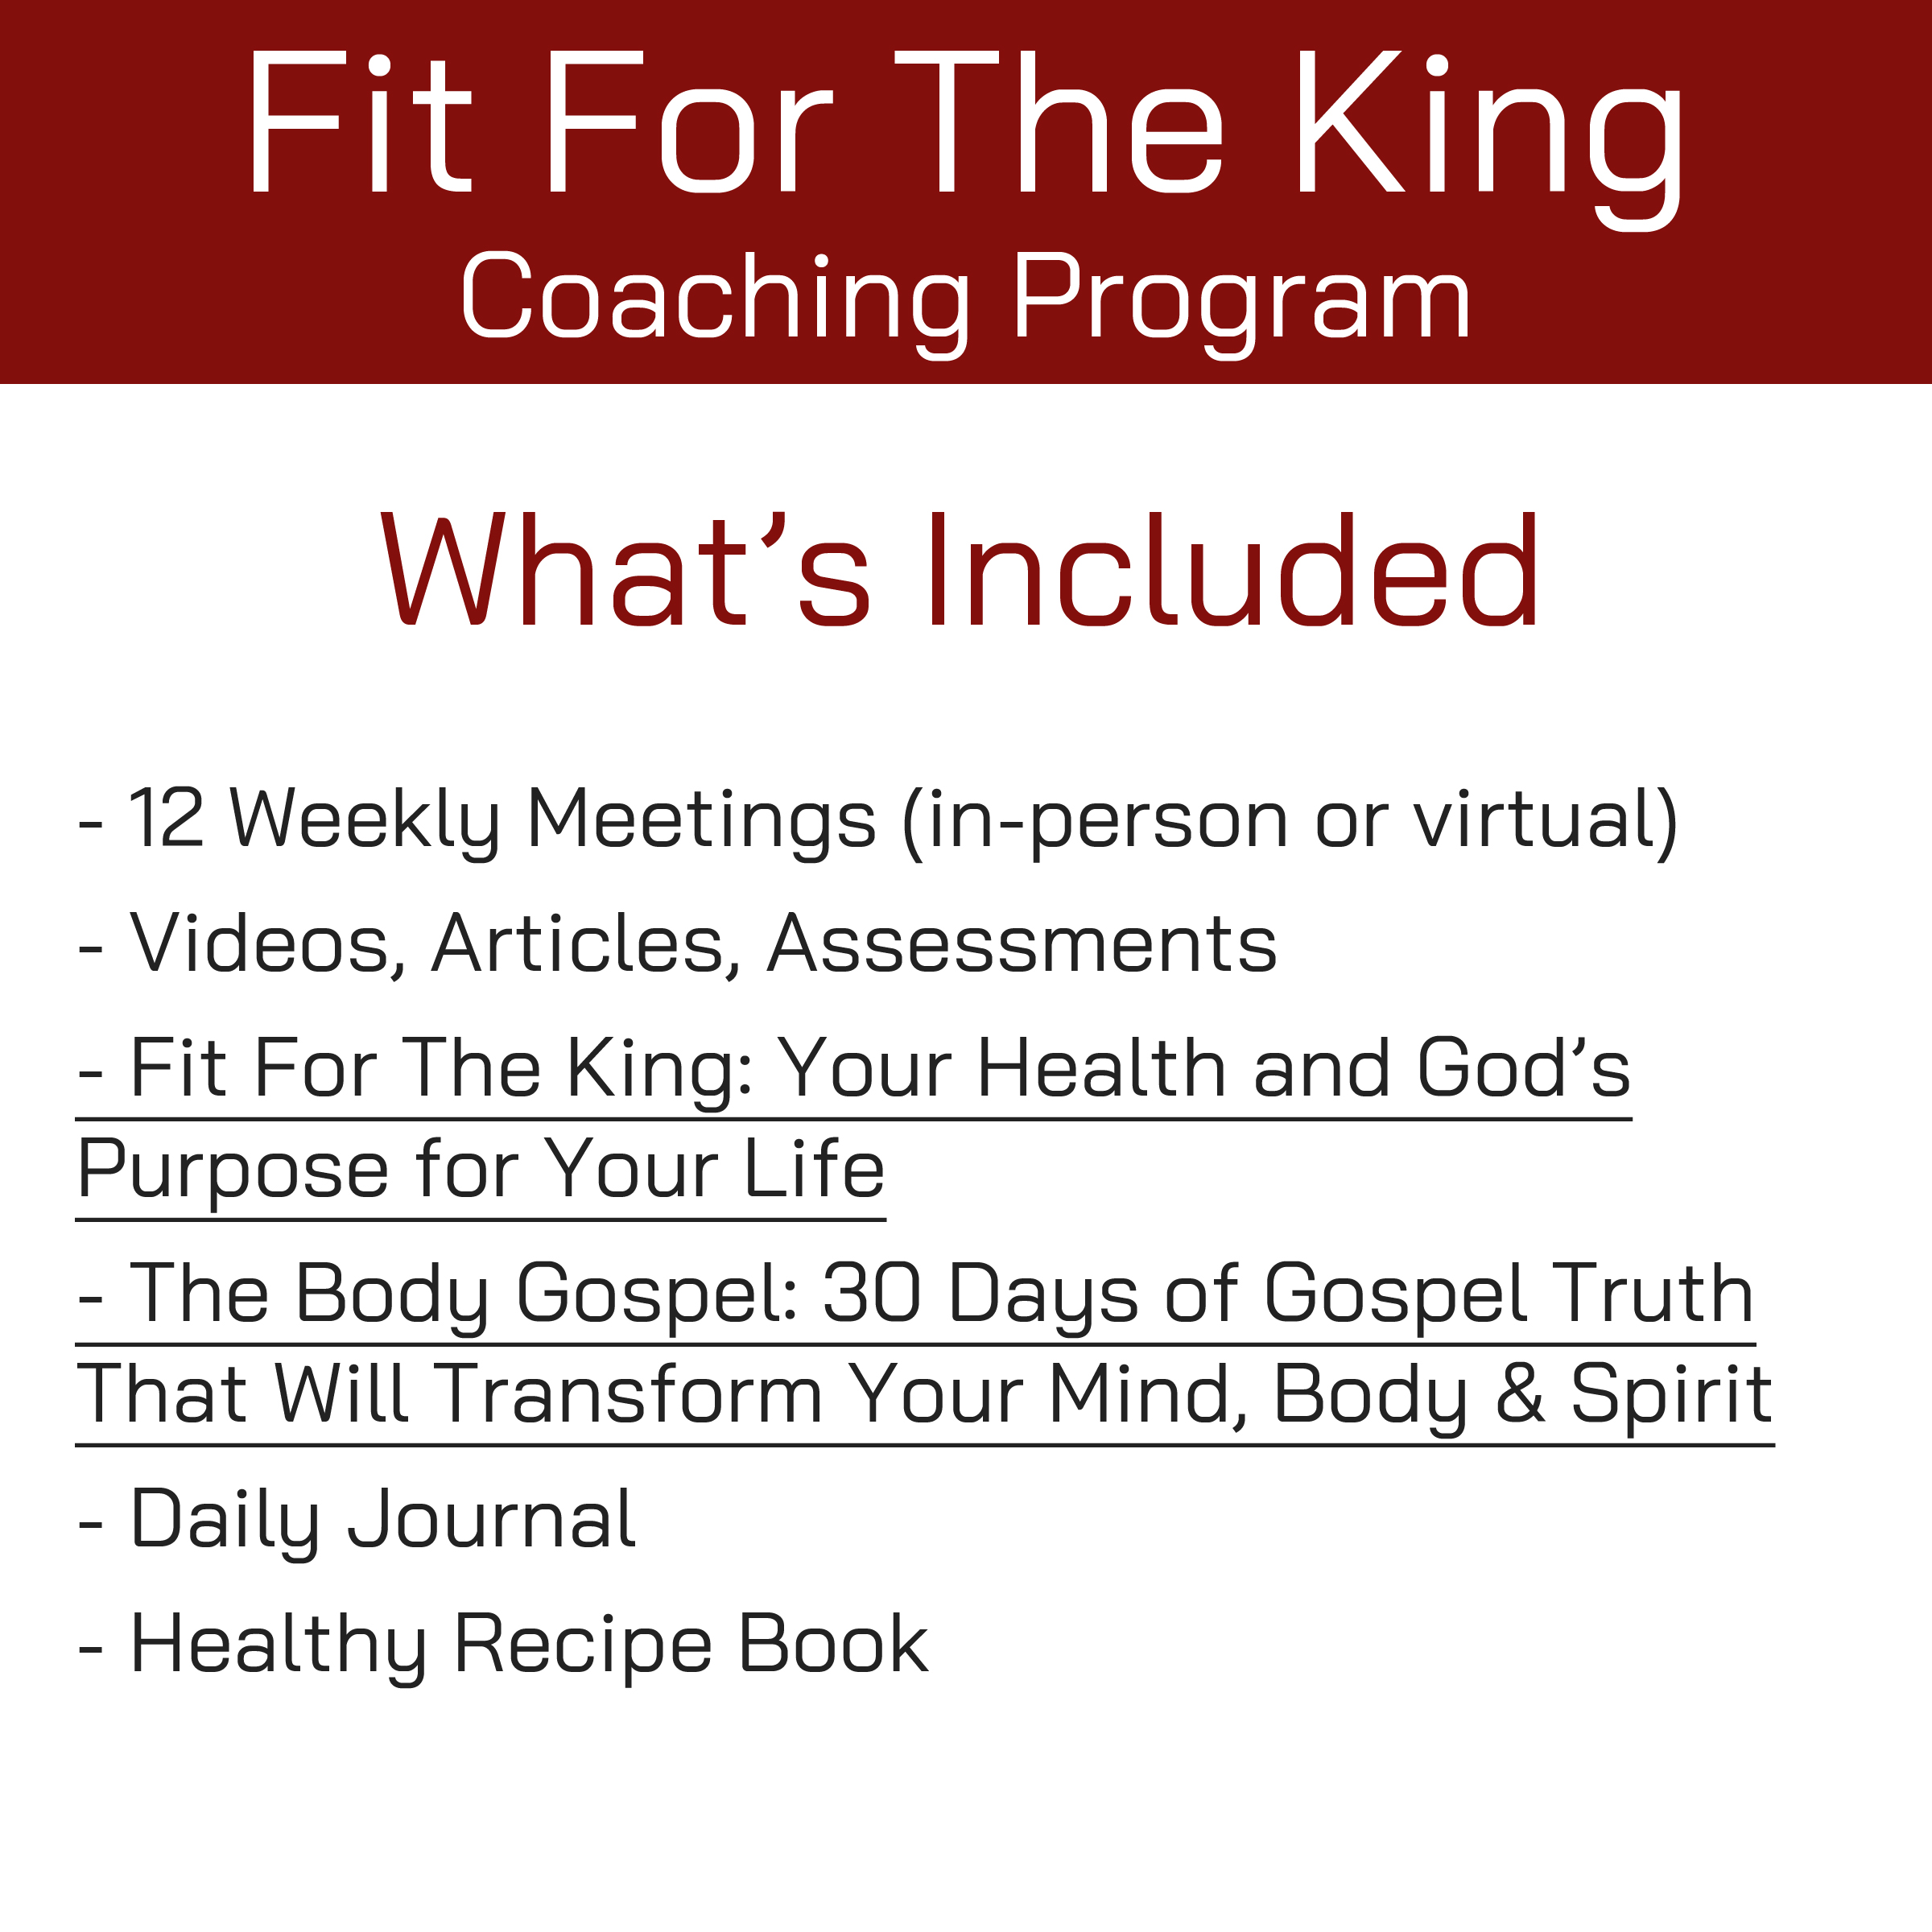 FFTK Coaching Program - What's Included